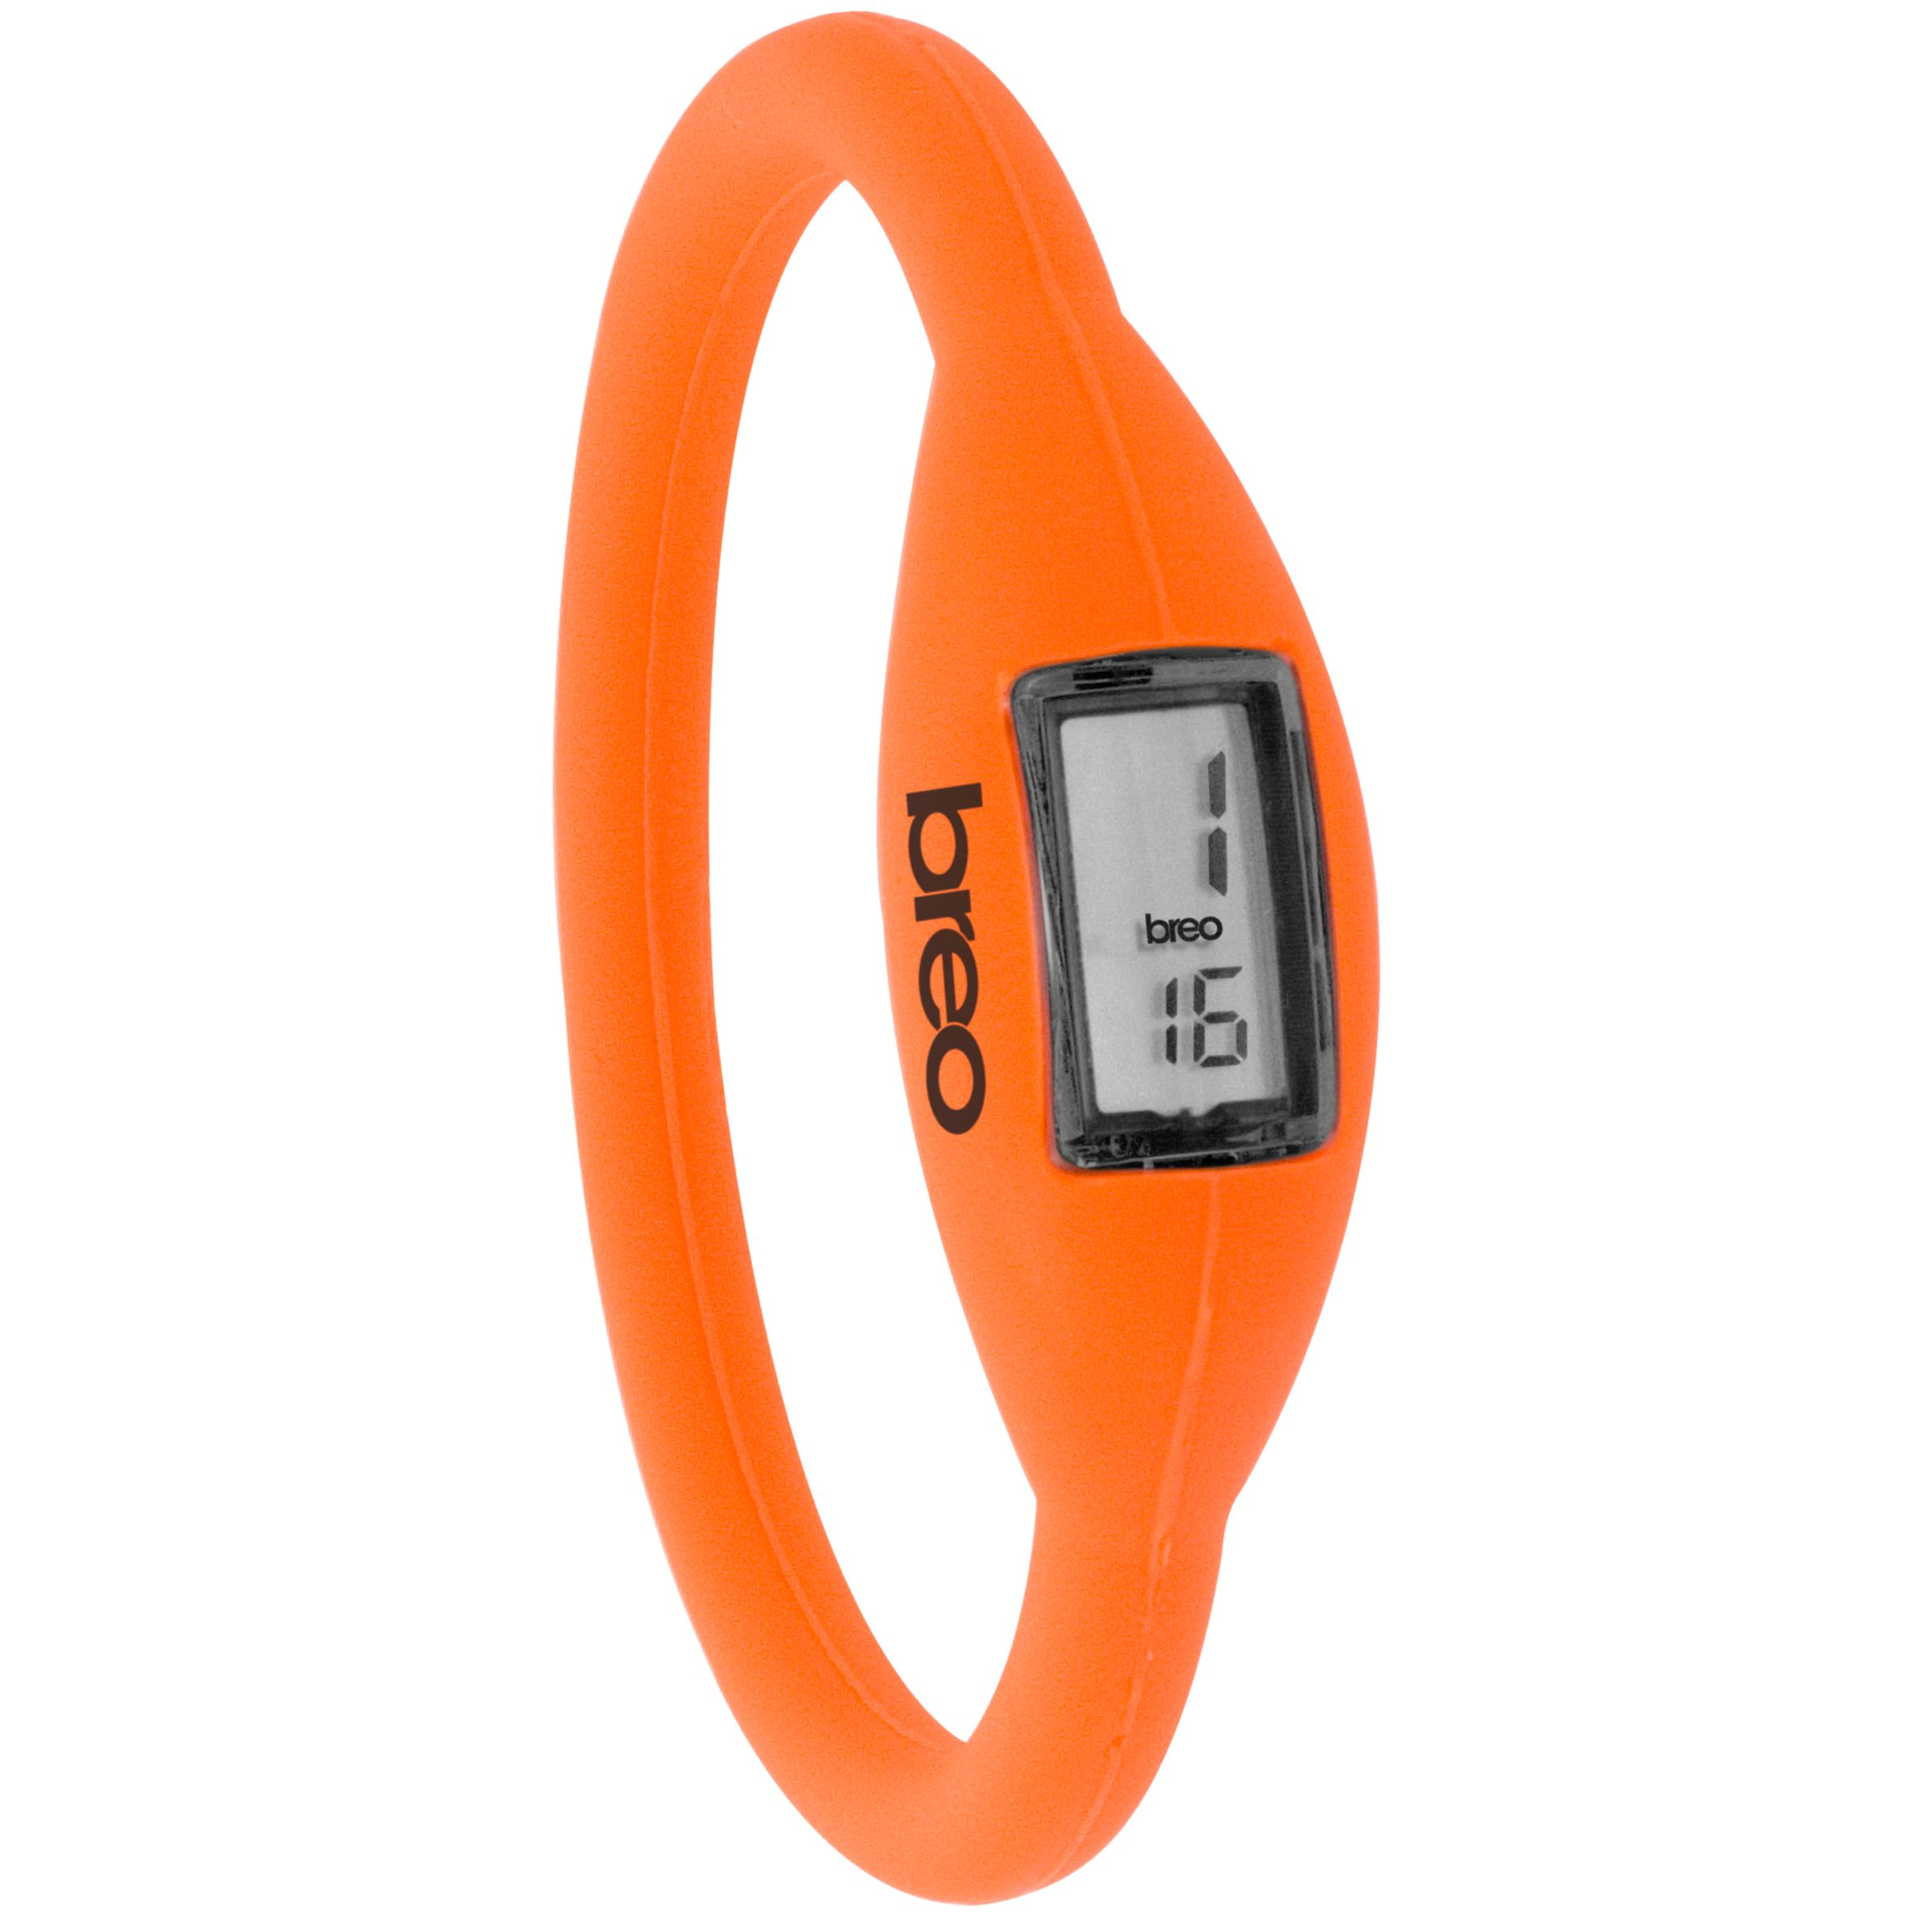 Breo Roam B-TI-NR1 Digital Watch, Fluro Orange